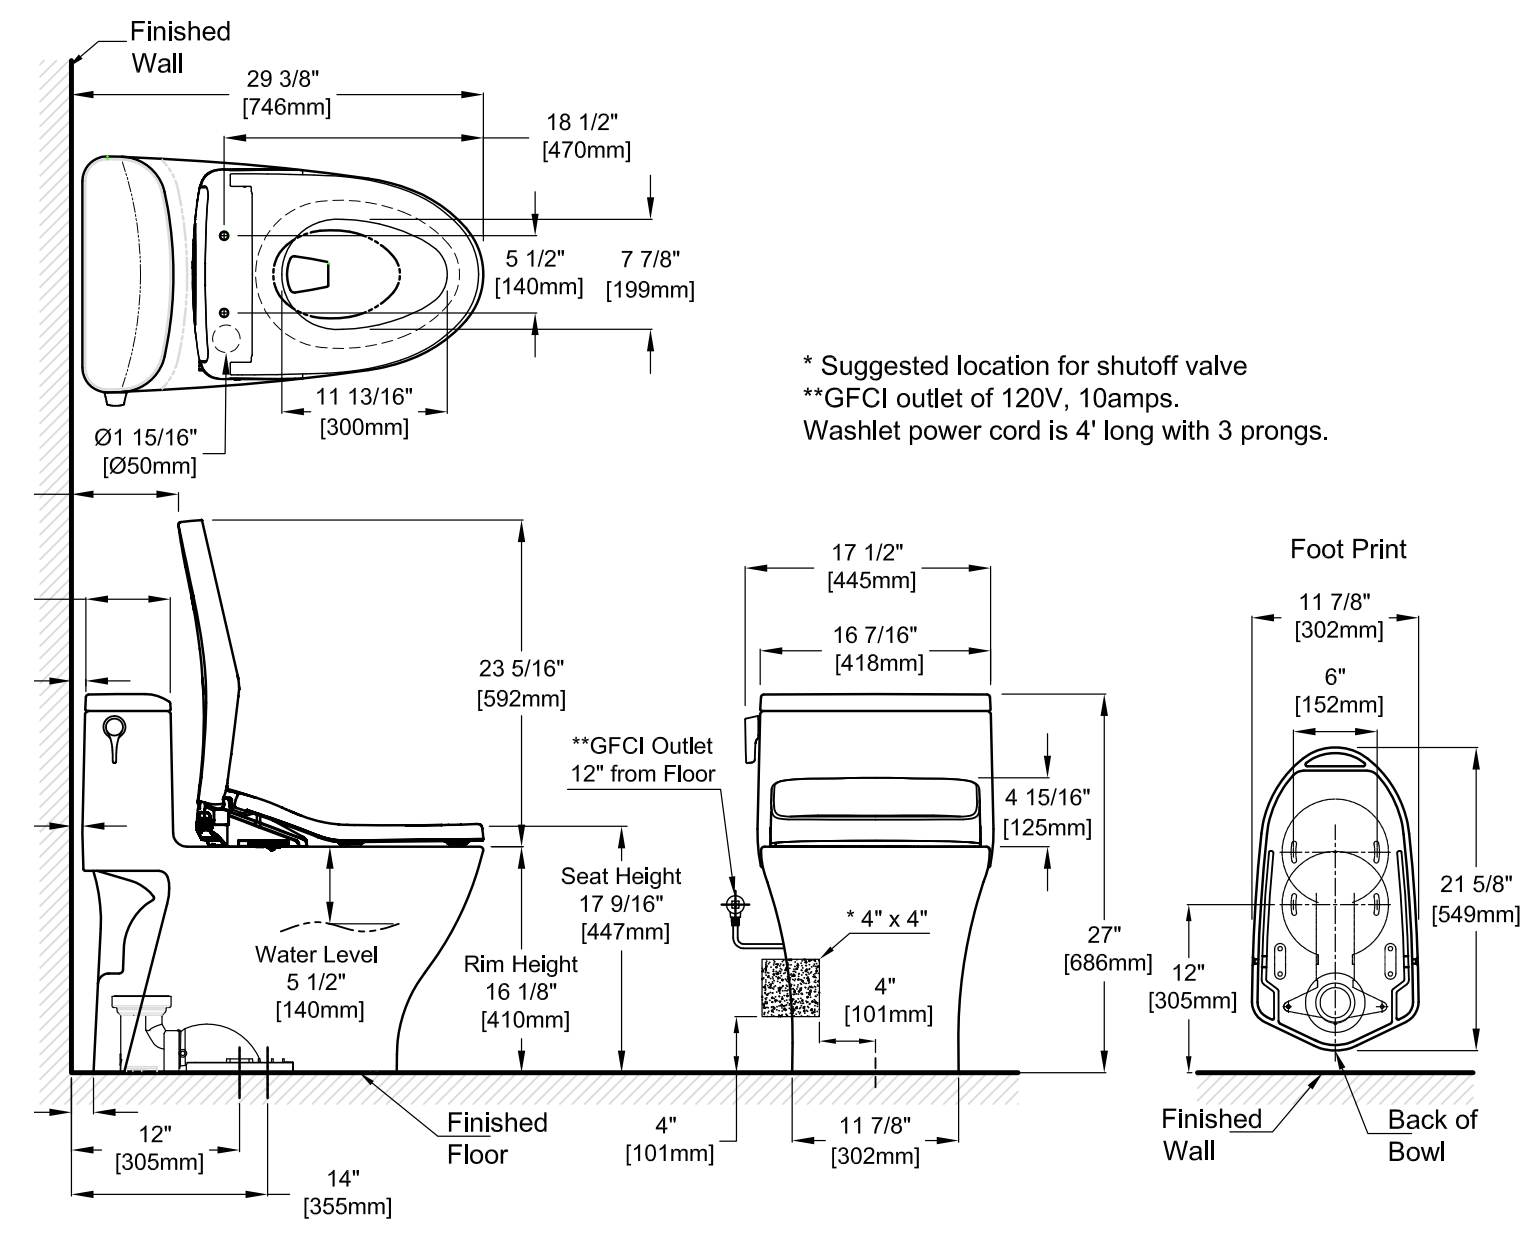 nexus-1g-washlet-s500e-one-piece-toilet-1.0-gpf-diagram-2.png